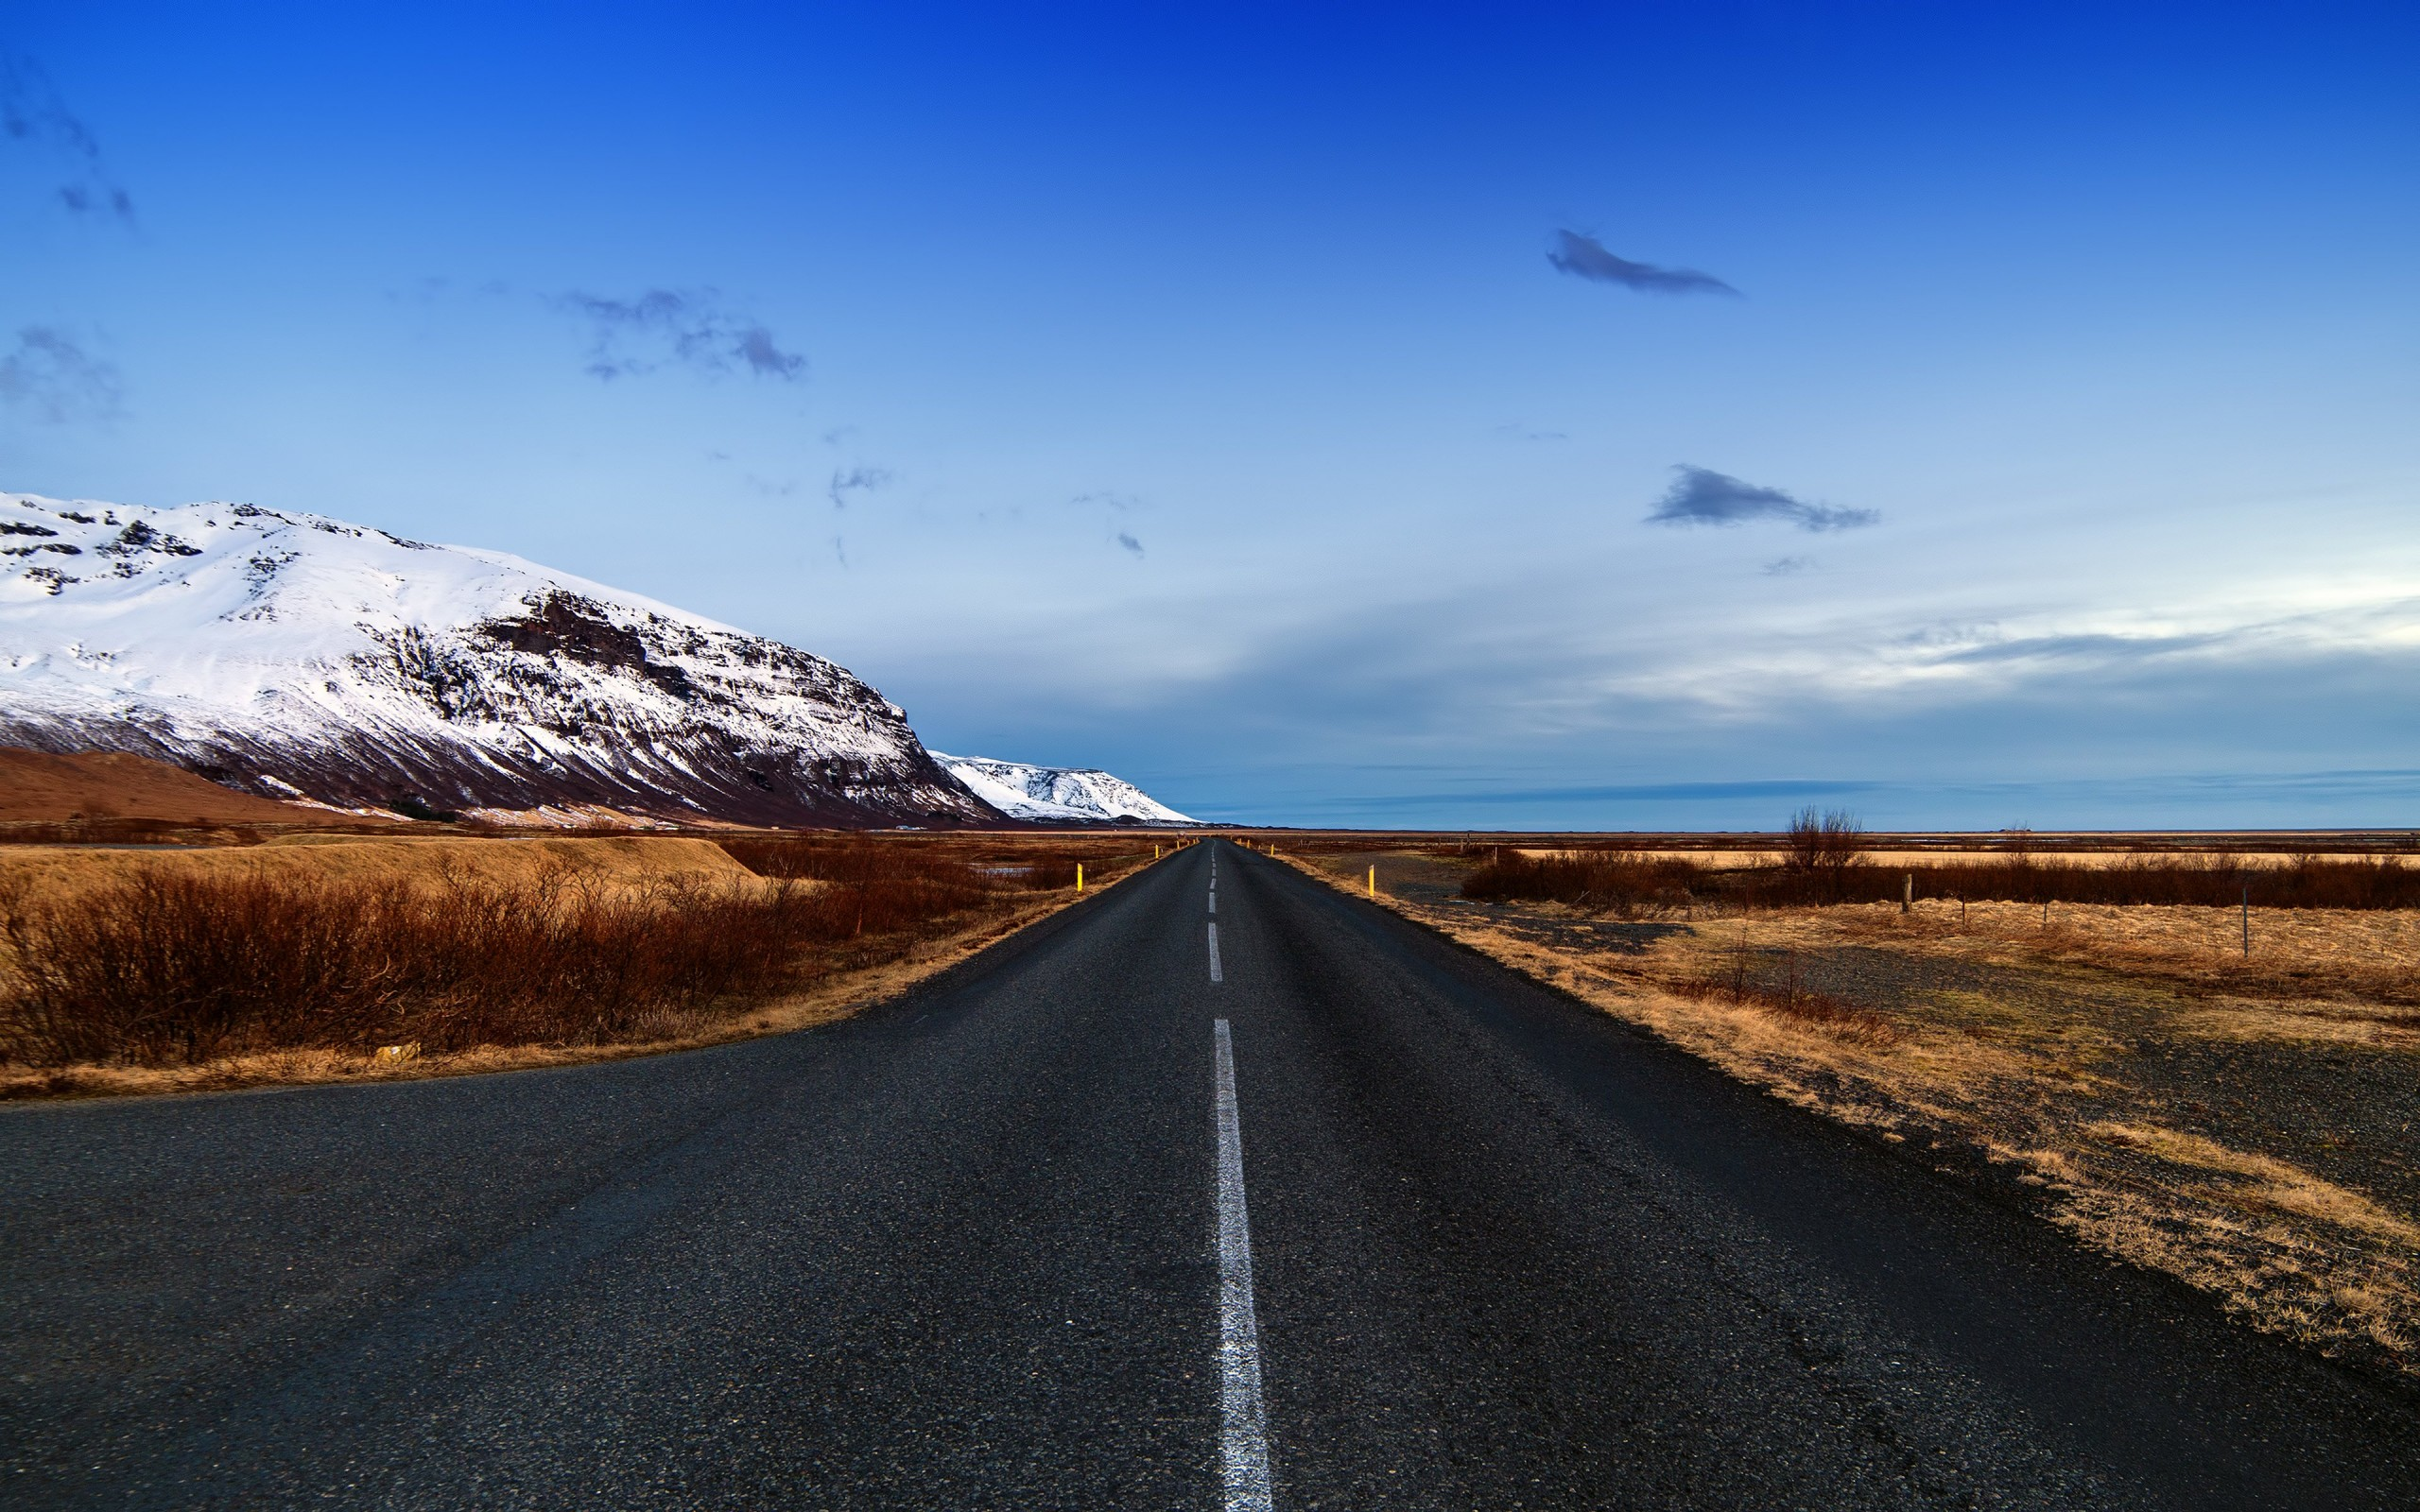 Icelandic Road, Skaftafell, Iceland Wallpaper for Desktop 2560x1600